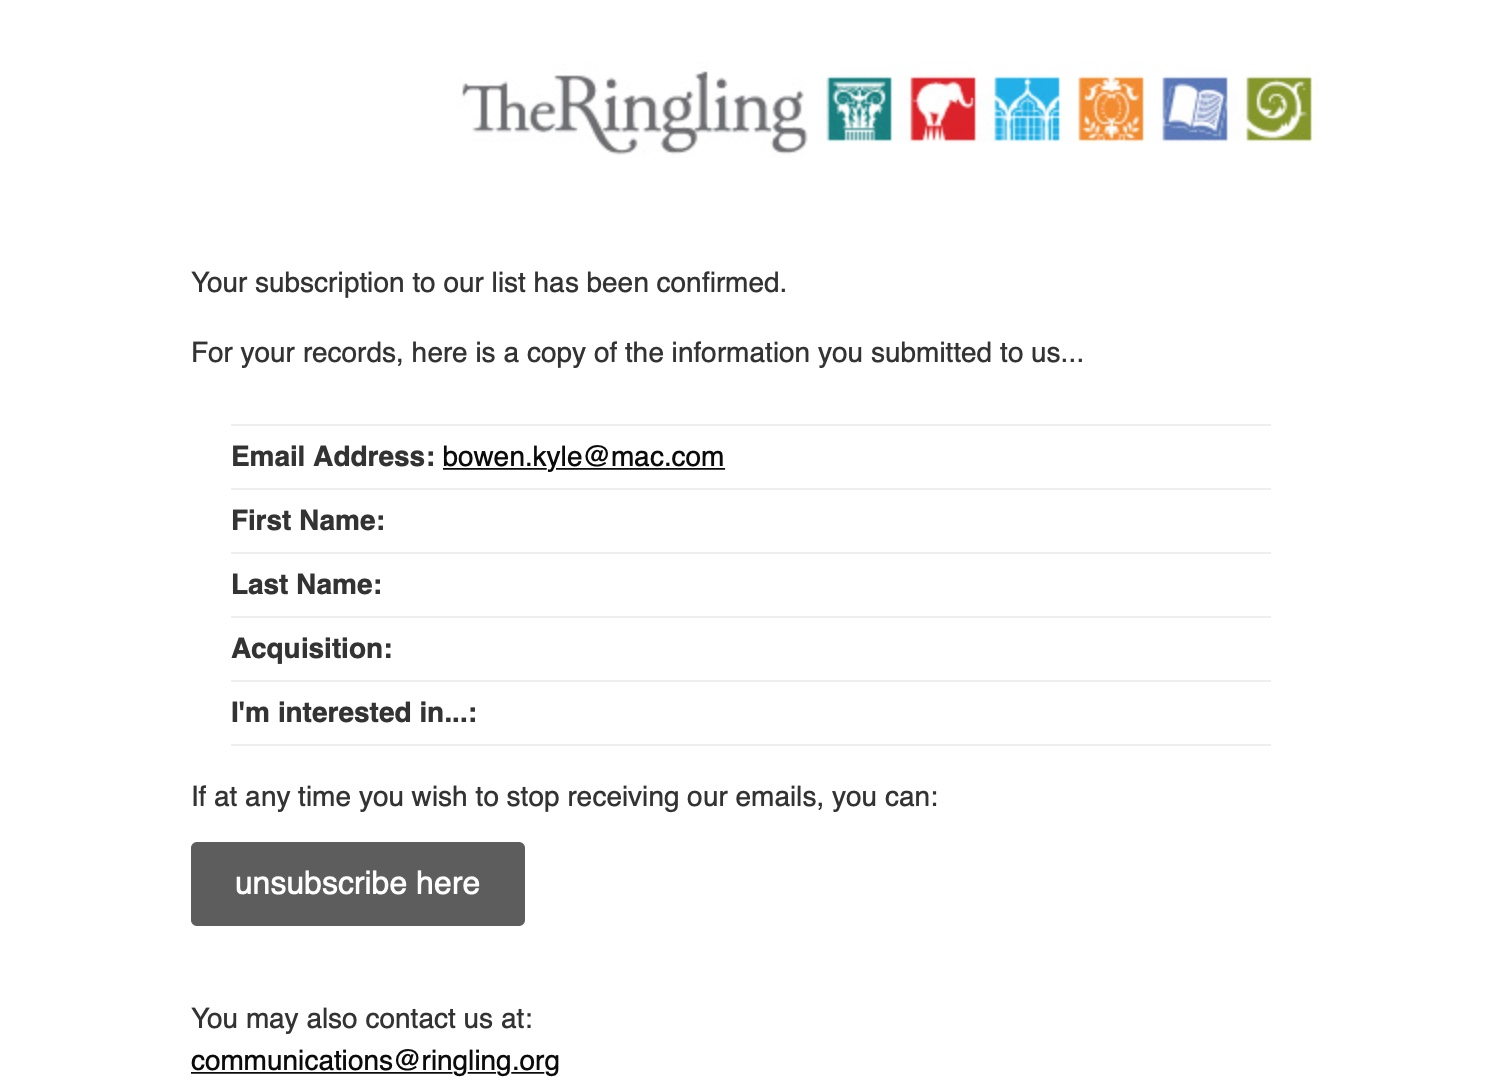 Confirmation email from Ringling newsletter